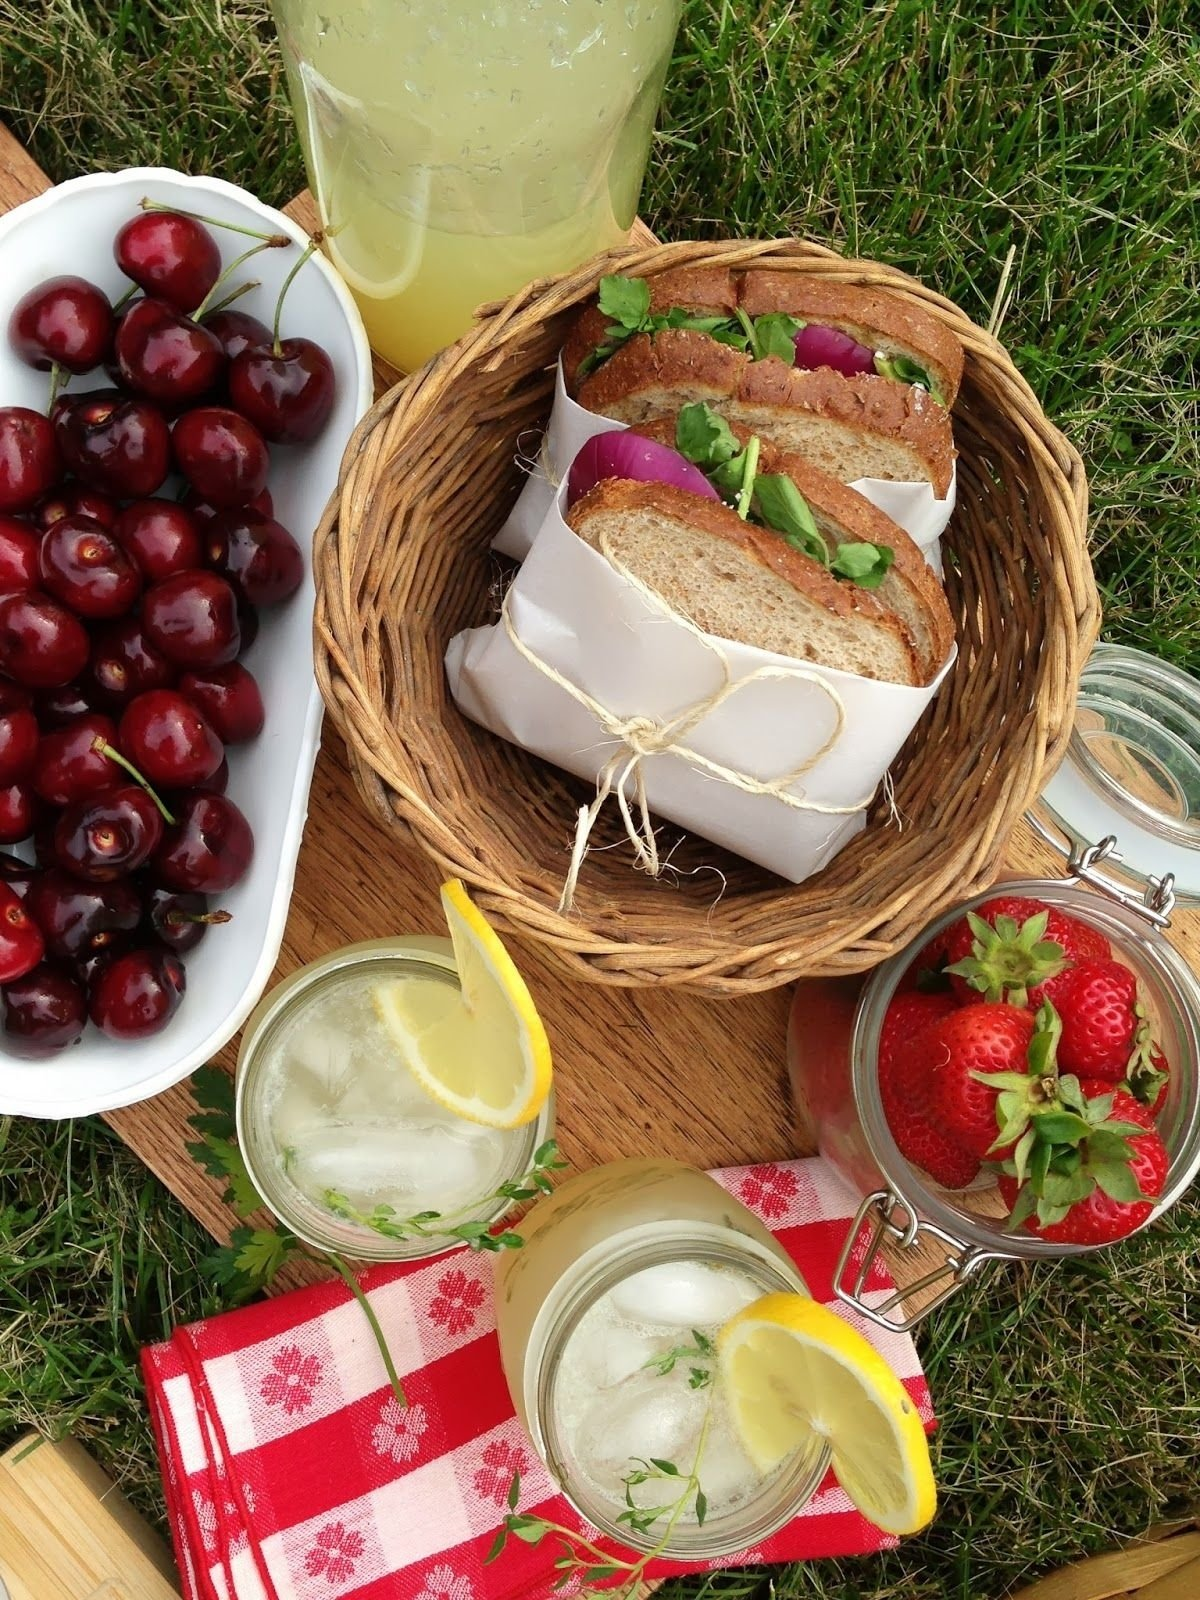 10 Gorgeous Picnic Food Ideas For Two intrinsic beauty entertaining picnic for two date ideas 2 2020